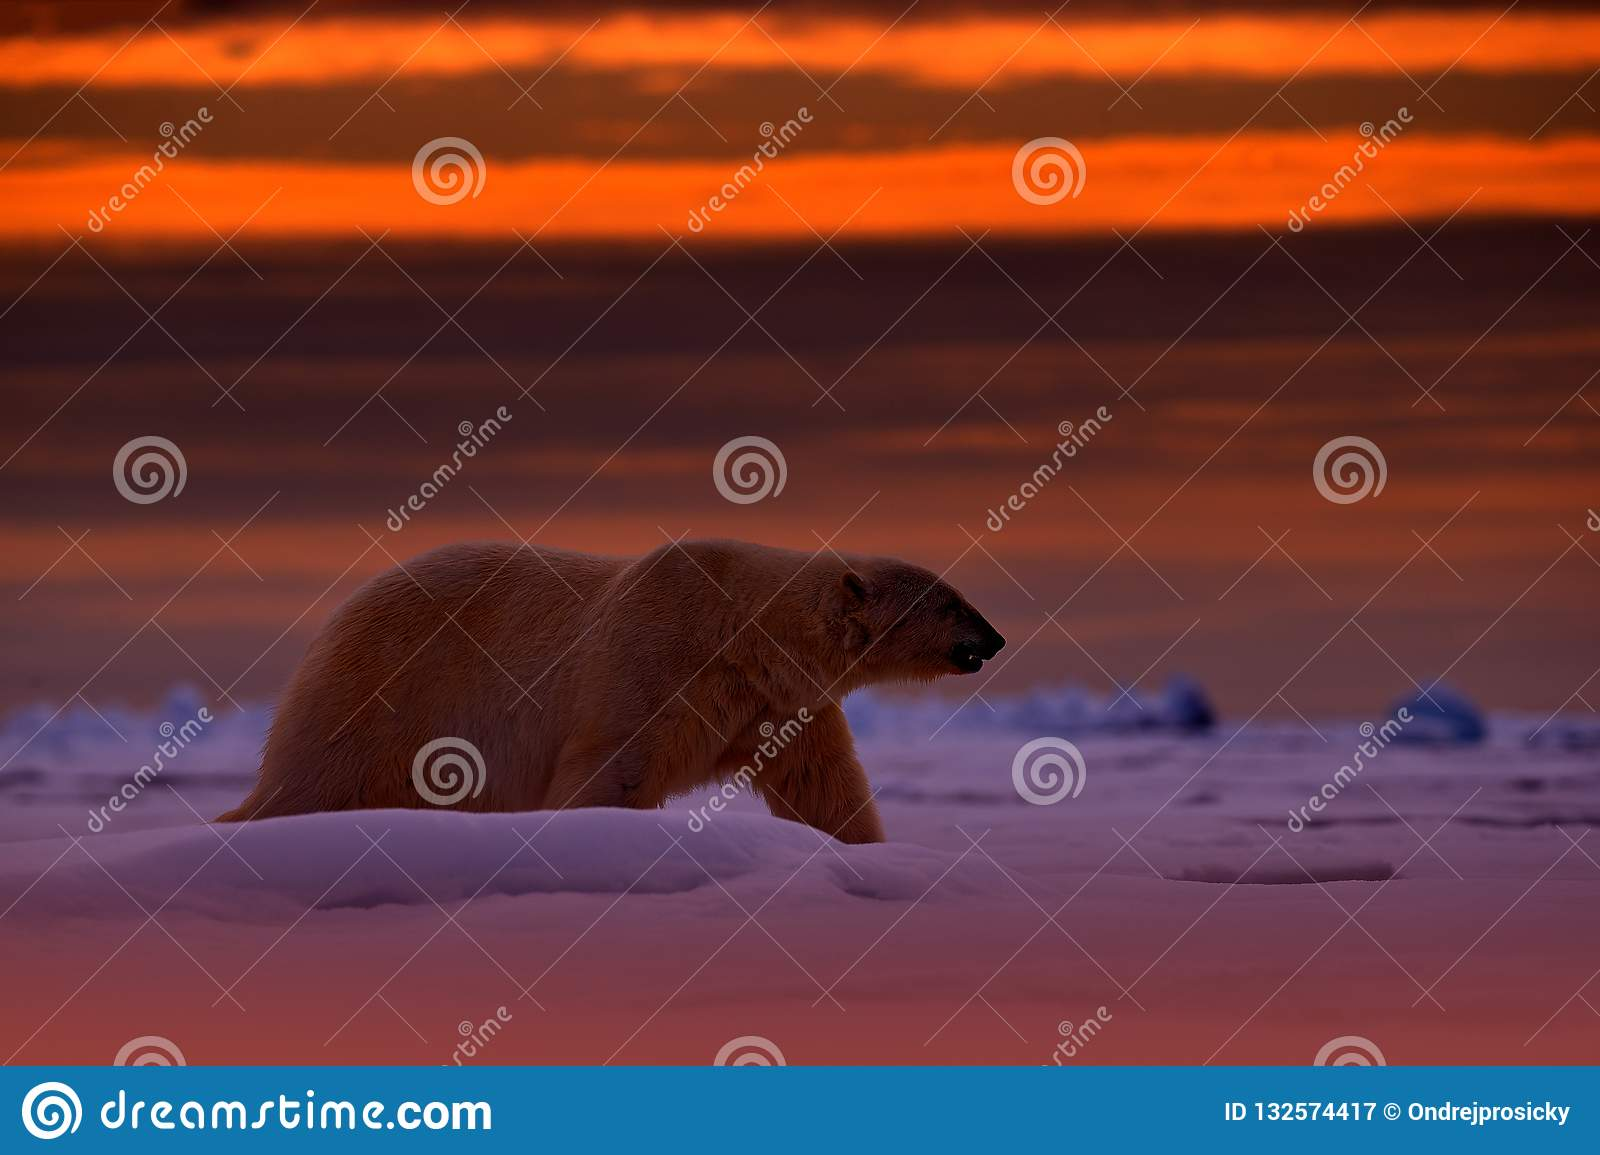 Polar bear sunset in the Arctic. Bear on the drifting ice with snow, with evening orange sun, Svalbard, Norway. Beautiful red sky